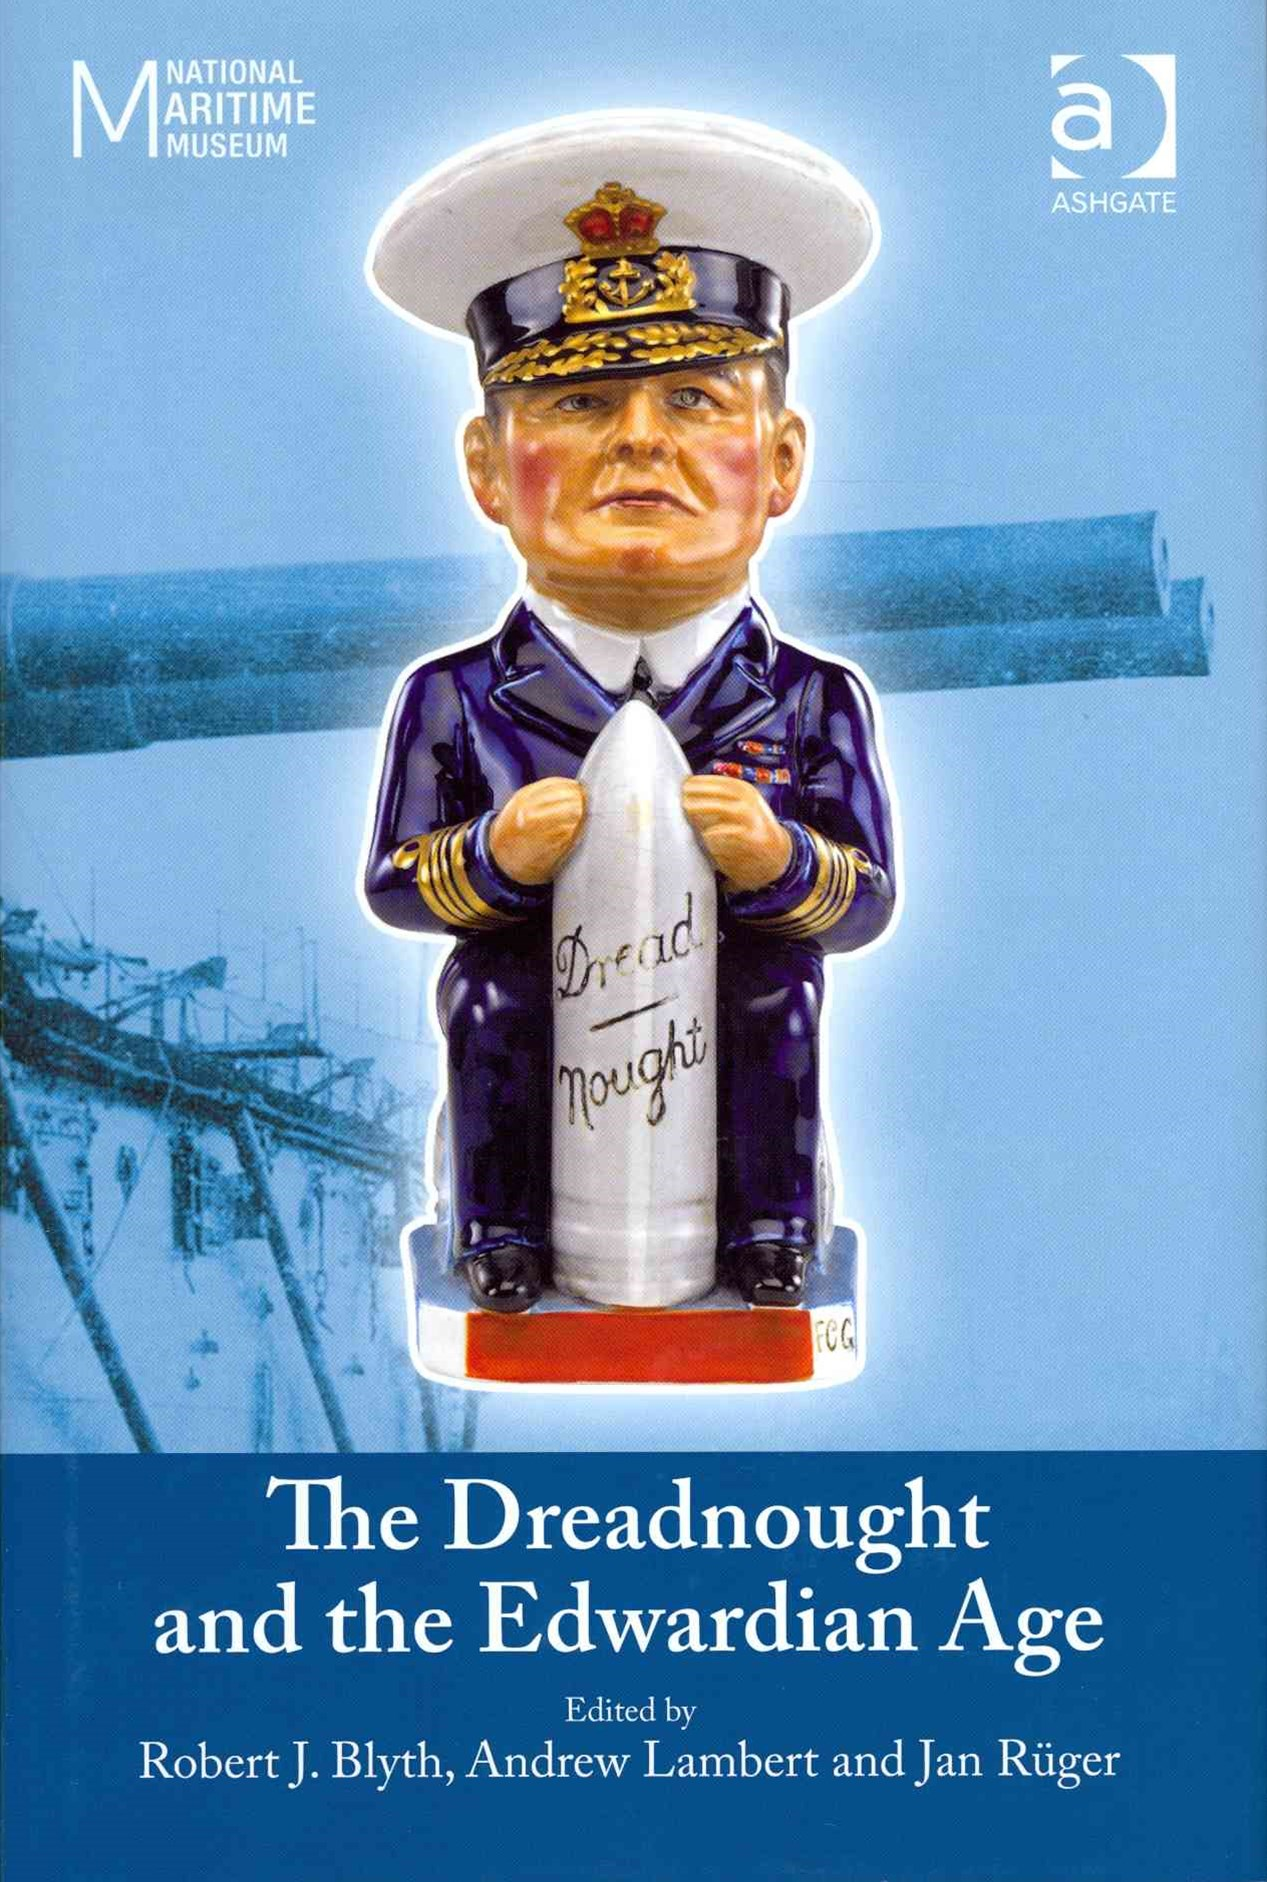 Dreadnought and the Edwardian Age